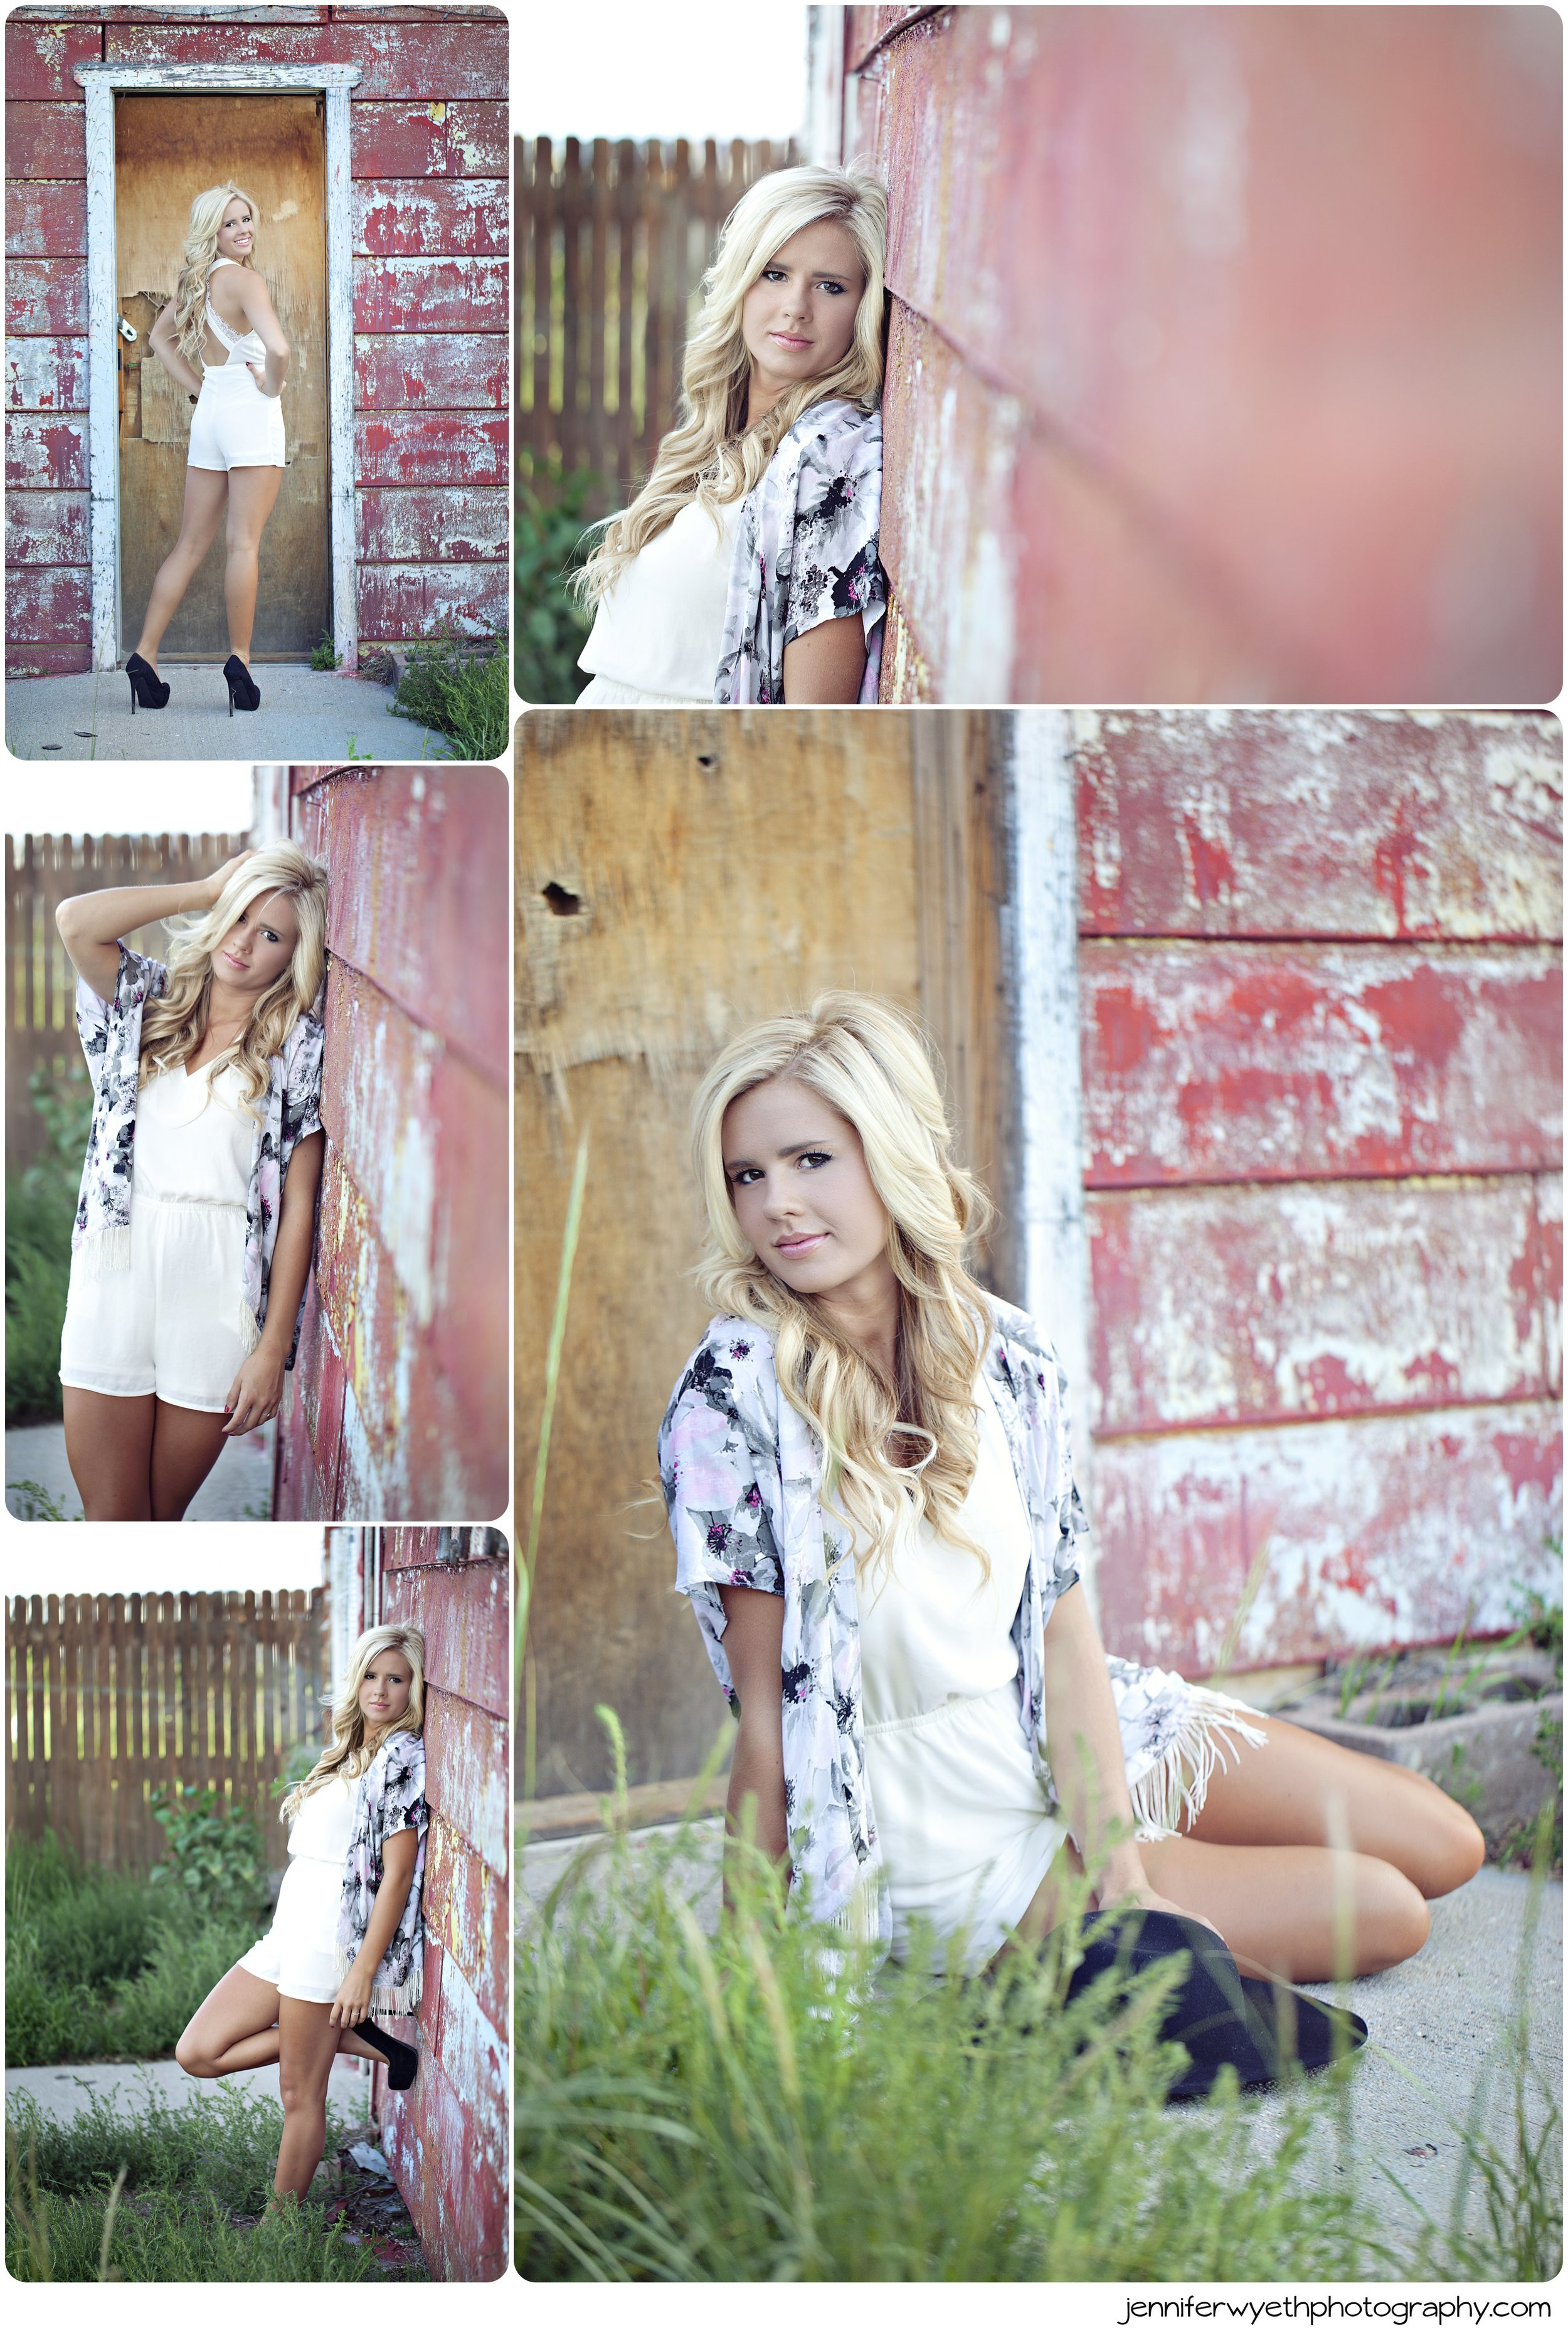 white romper and a rustic barn surround this jaw dropping woman